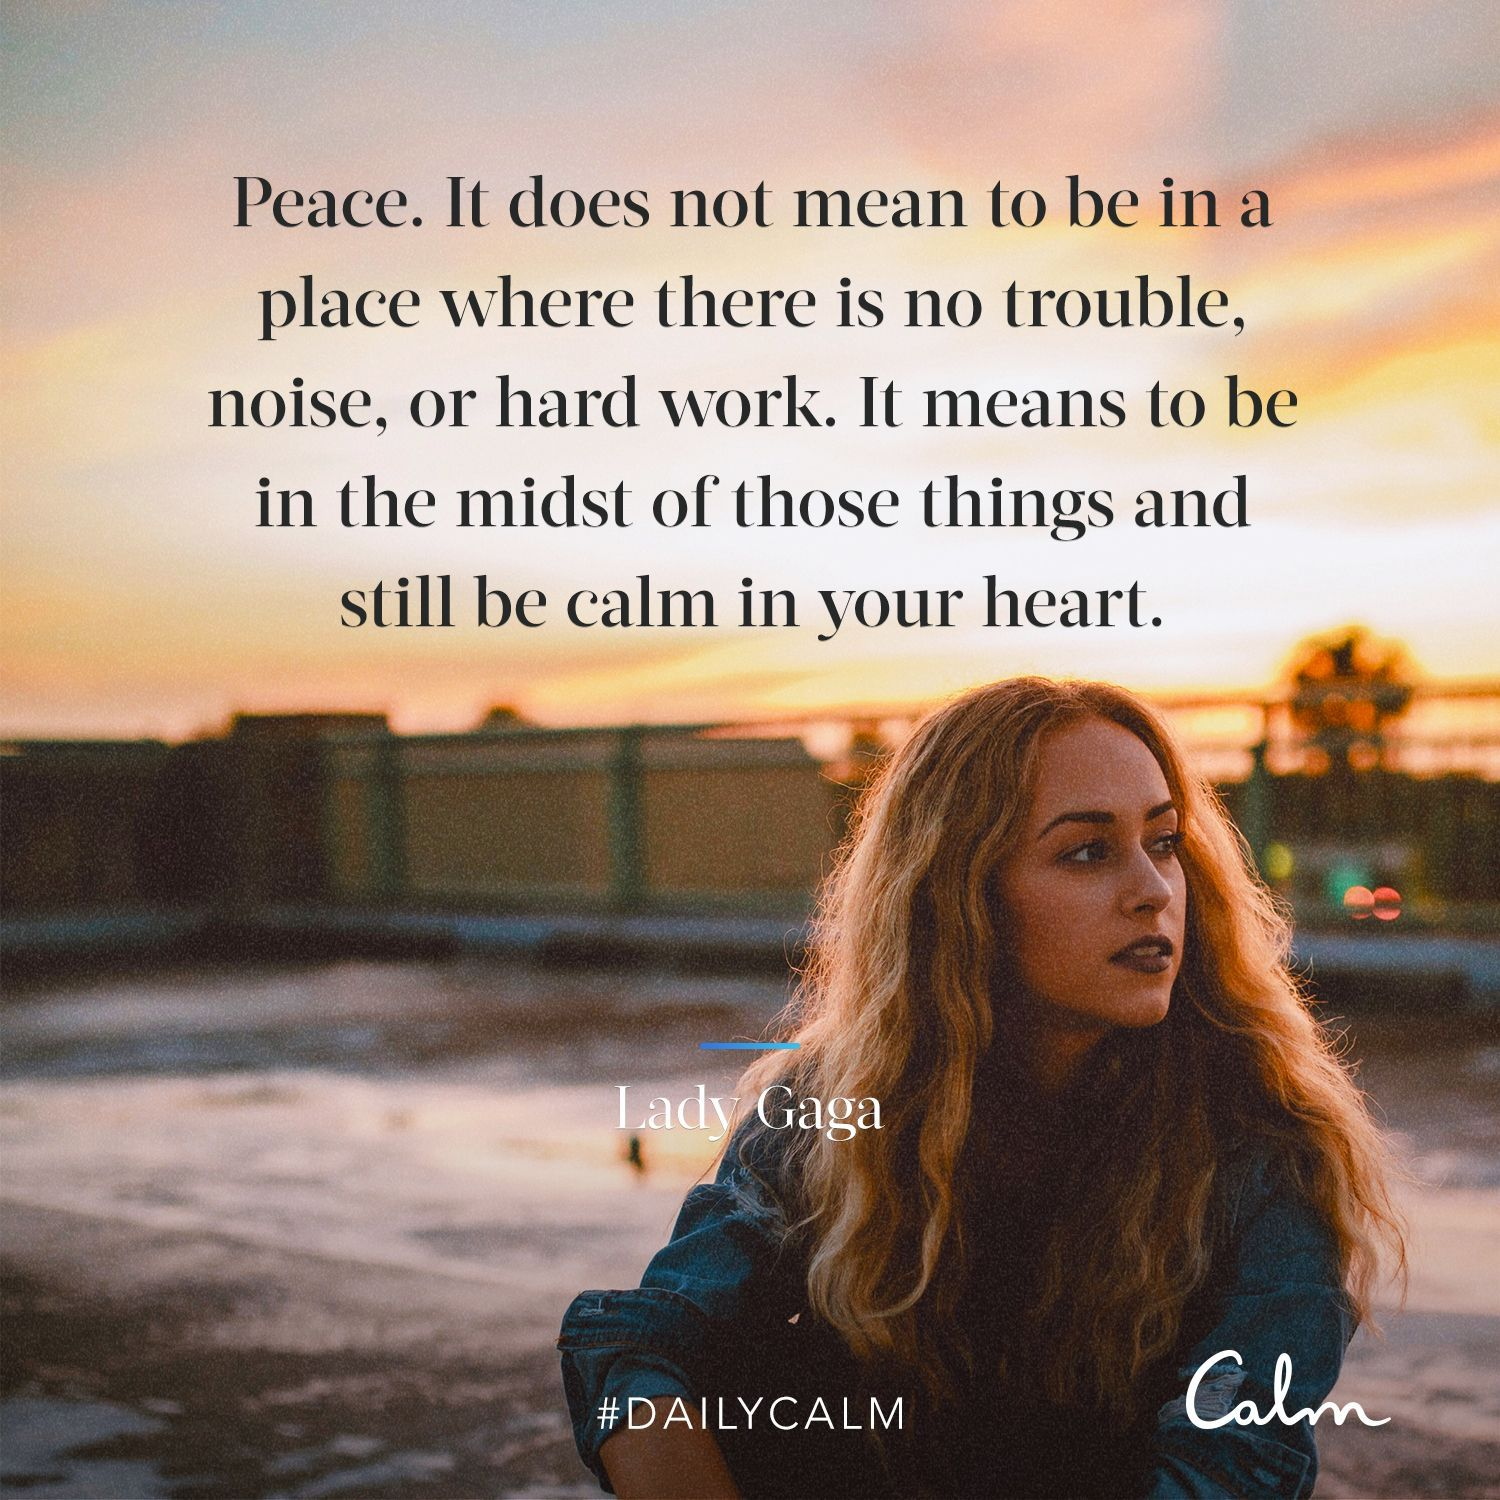 Daily Calm Quotes Peace It Does Not Mean To Be In A Place Where There Is No Trouble Noise Or Hard Work It Means Daily Calm Calm Quotes Lady Gaga Quotes